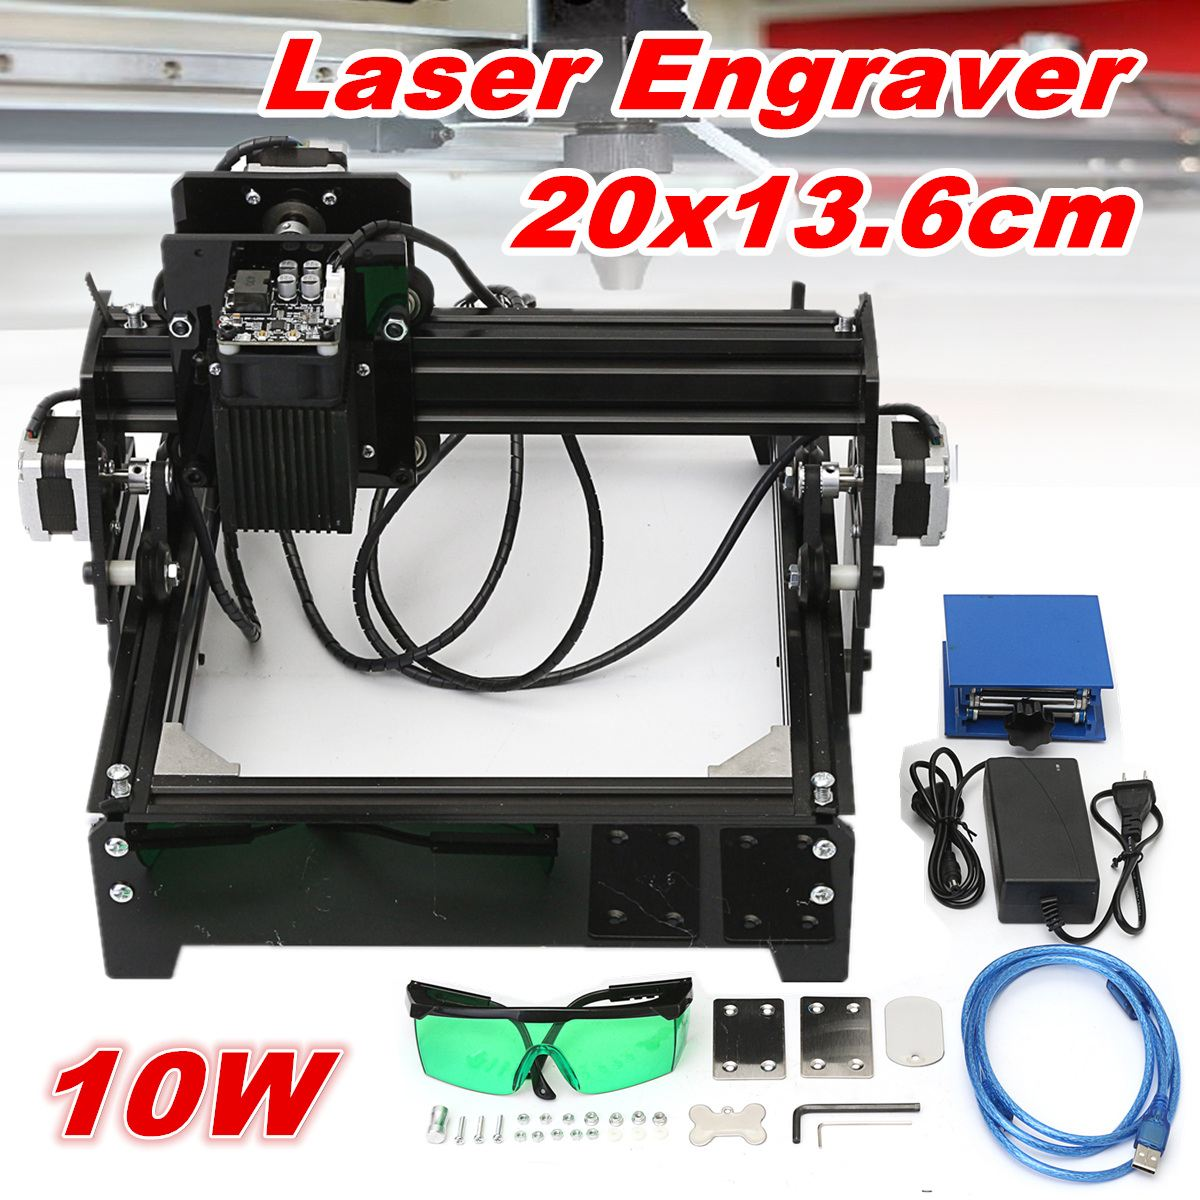 10W USB Desktop Metal Stone Wood CNC Laser Engraver Marking Engraving Machine Engraving Area 20 x 14 cm + Protective Glasses high quality southern laser cast line instrument marking device 4lines ml313 the laser level